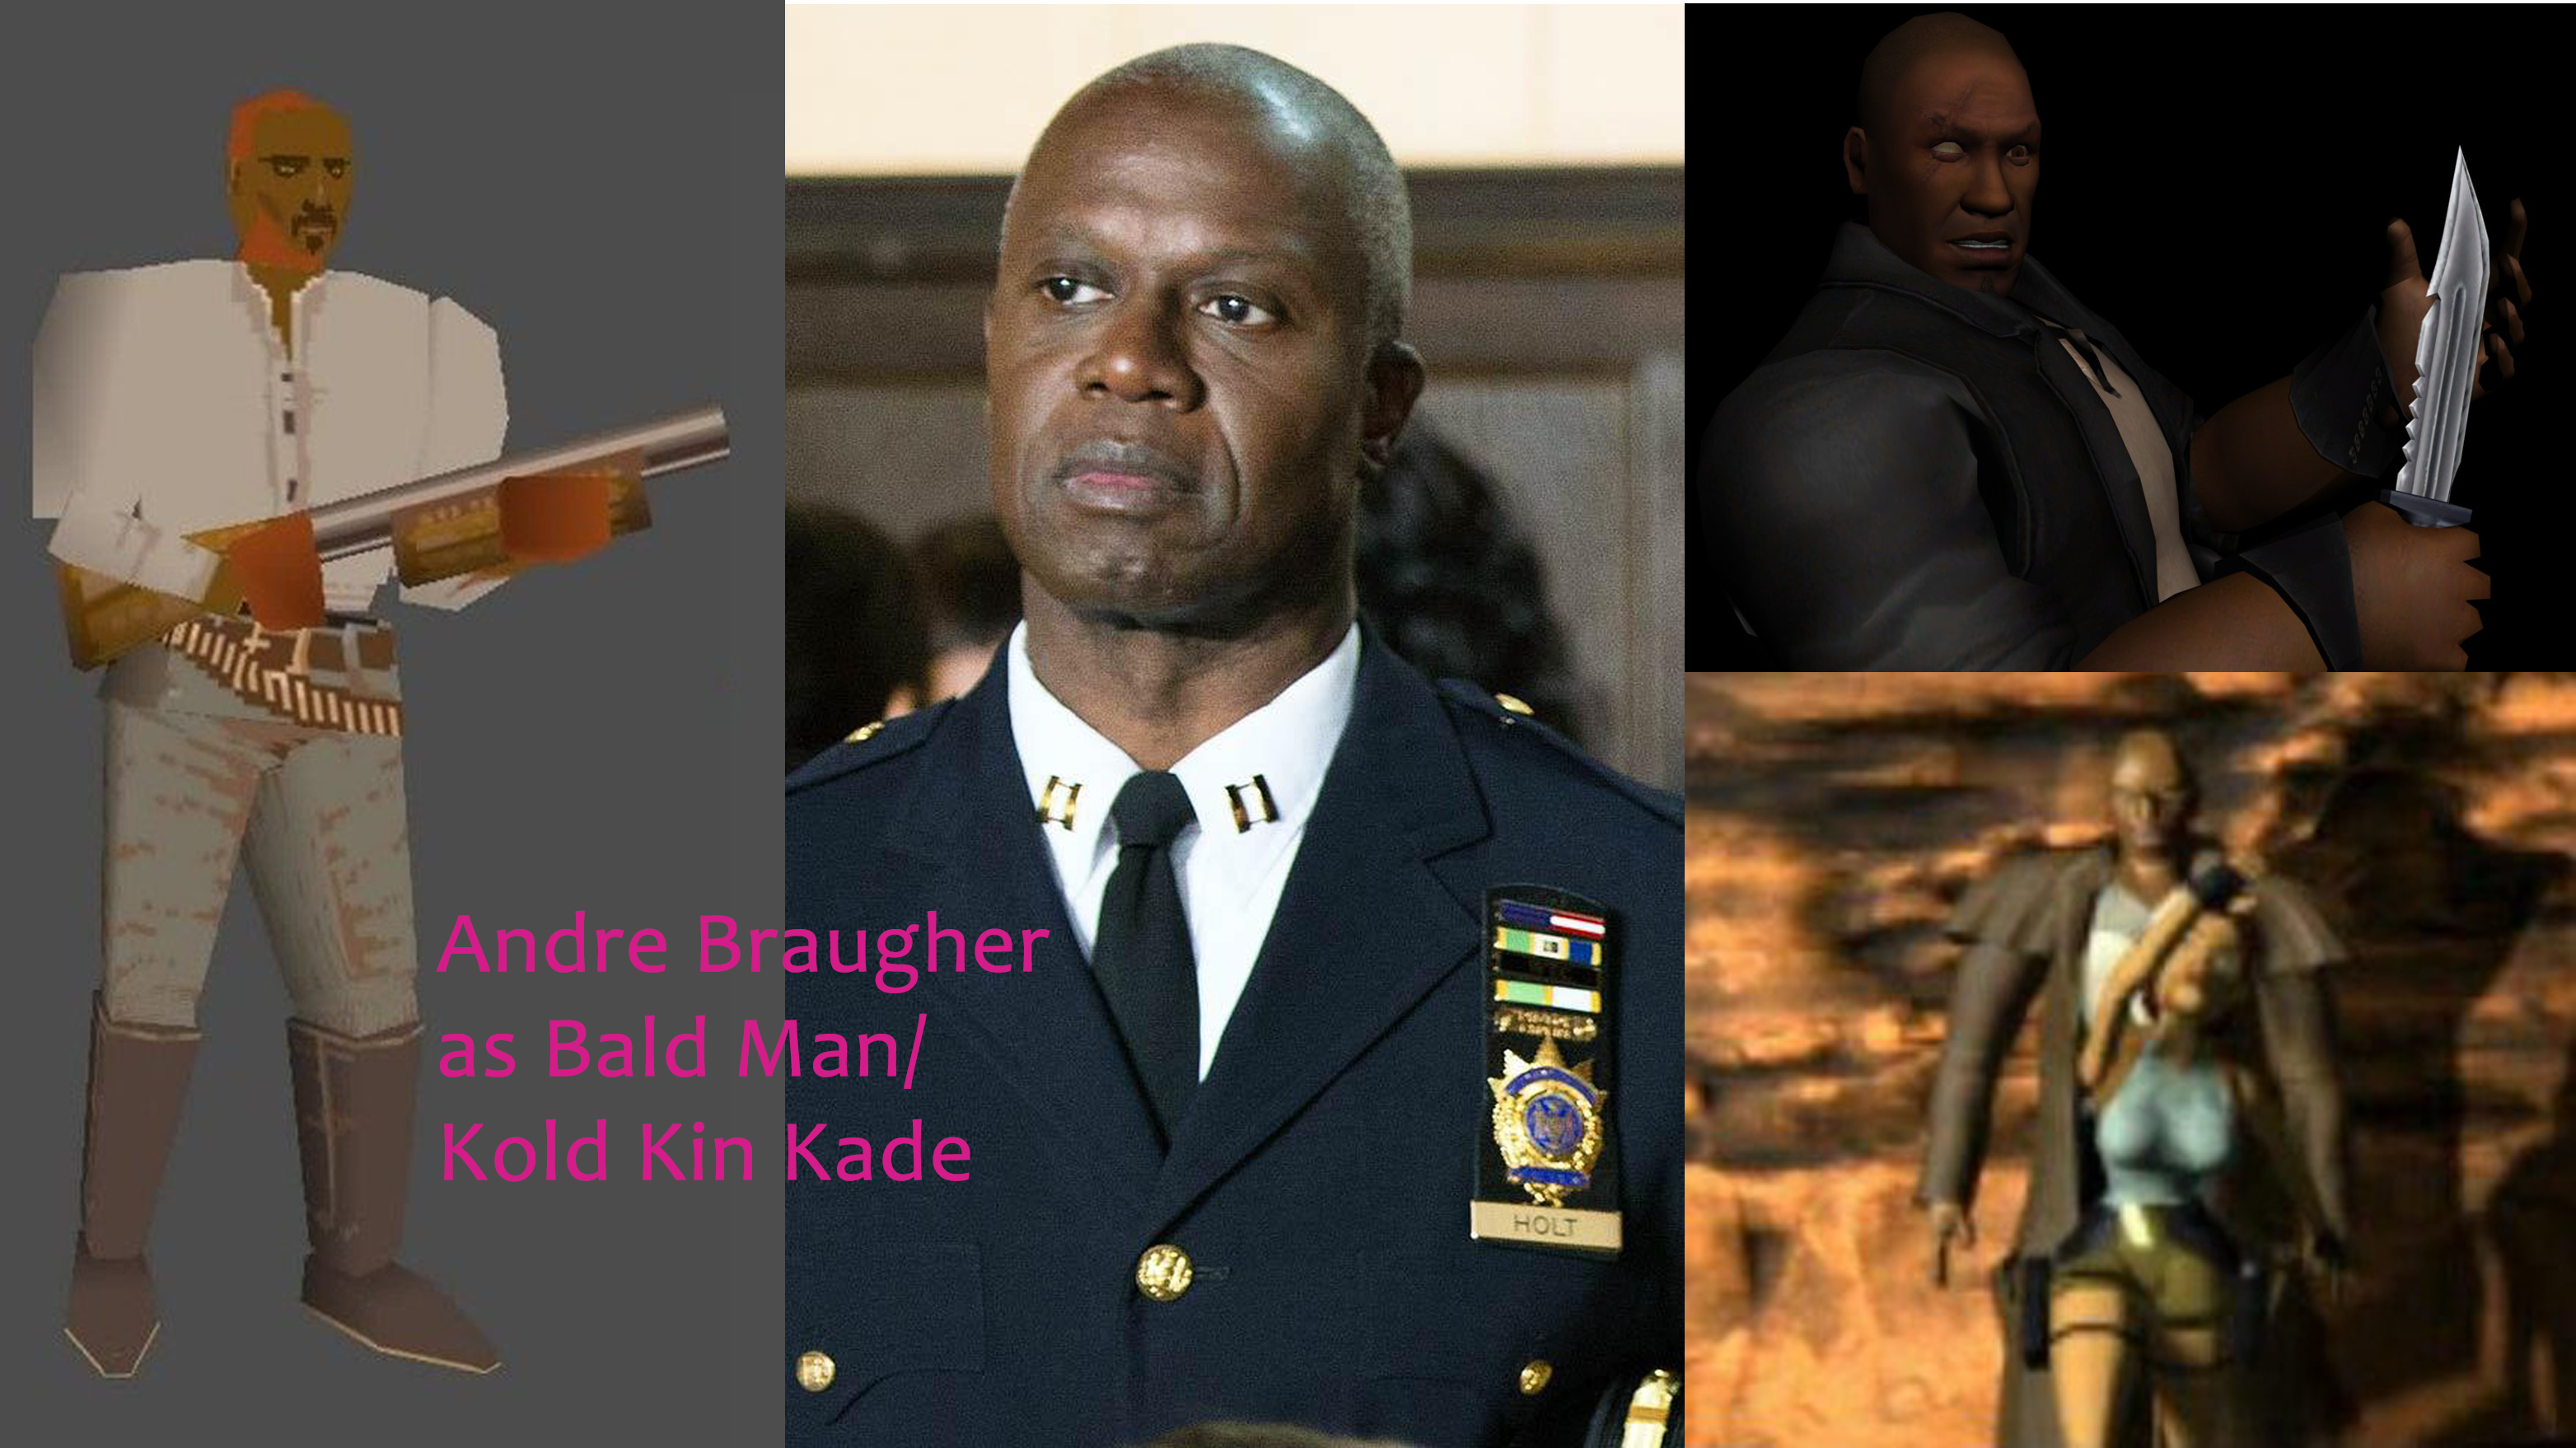 Andre Braugher as Bald Man Kold Kin Kade